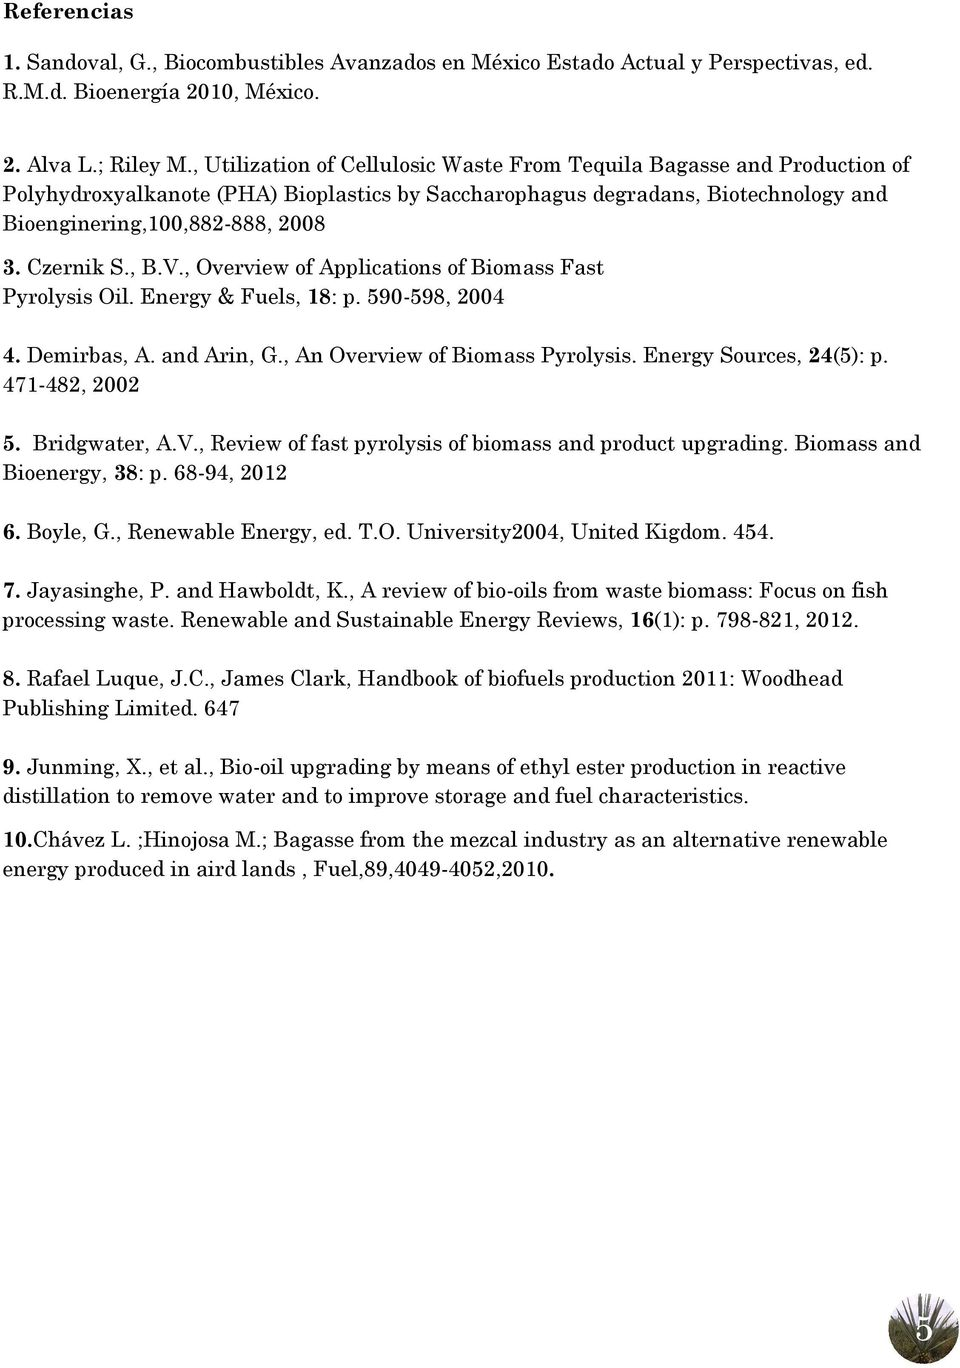 Czernik S., B.V., Overview of Applications of Biomass Fast Pyrolysis Oil. Energy & Fuels, 18: p. 590-598, 2004 4. Demirbas, A. and Arin, G., An Overview of Biomass Pyrolysis. Energy Sources, 24(5): p.